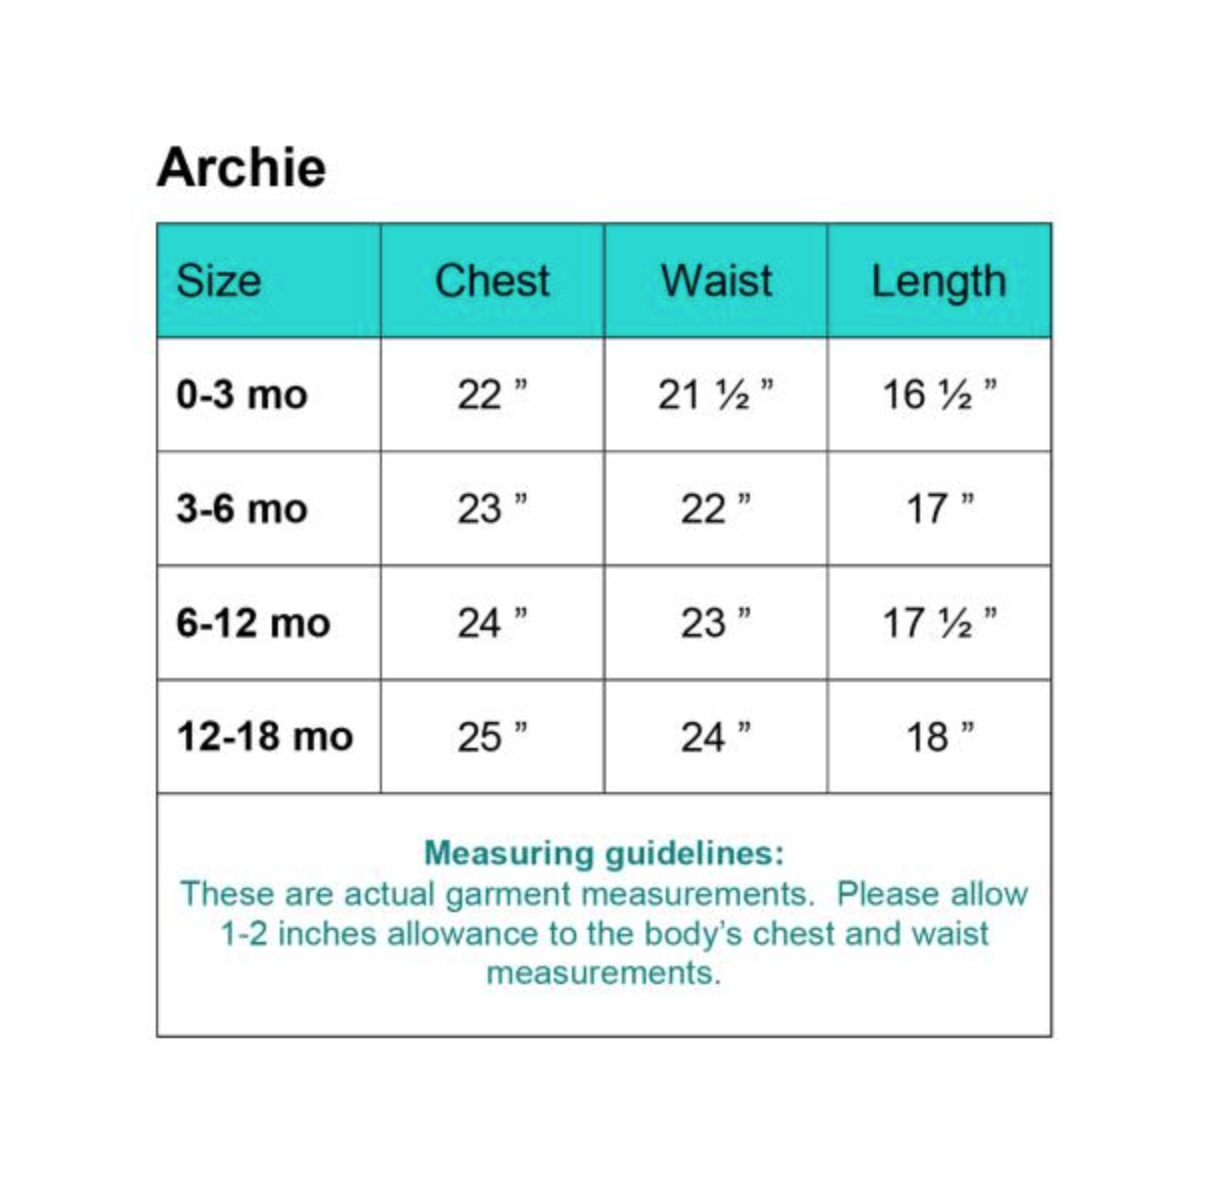 sizing-chart-archie.png